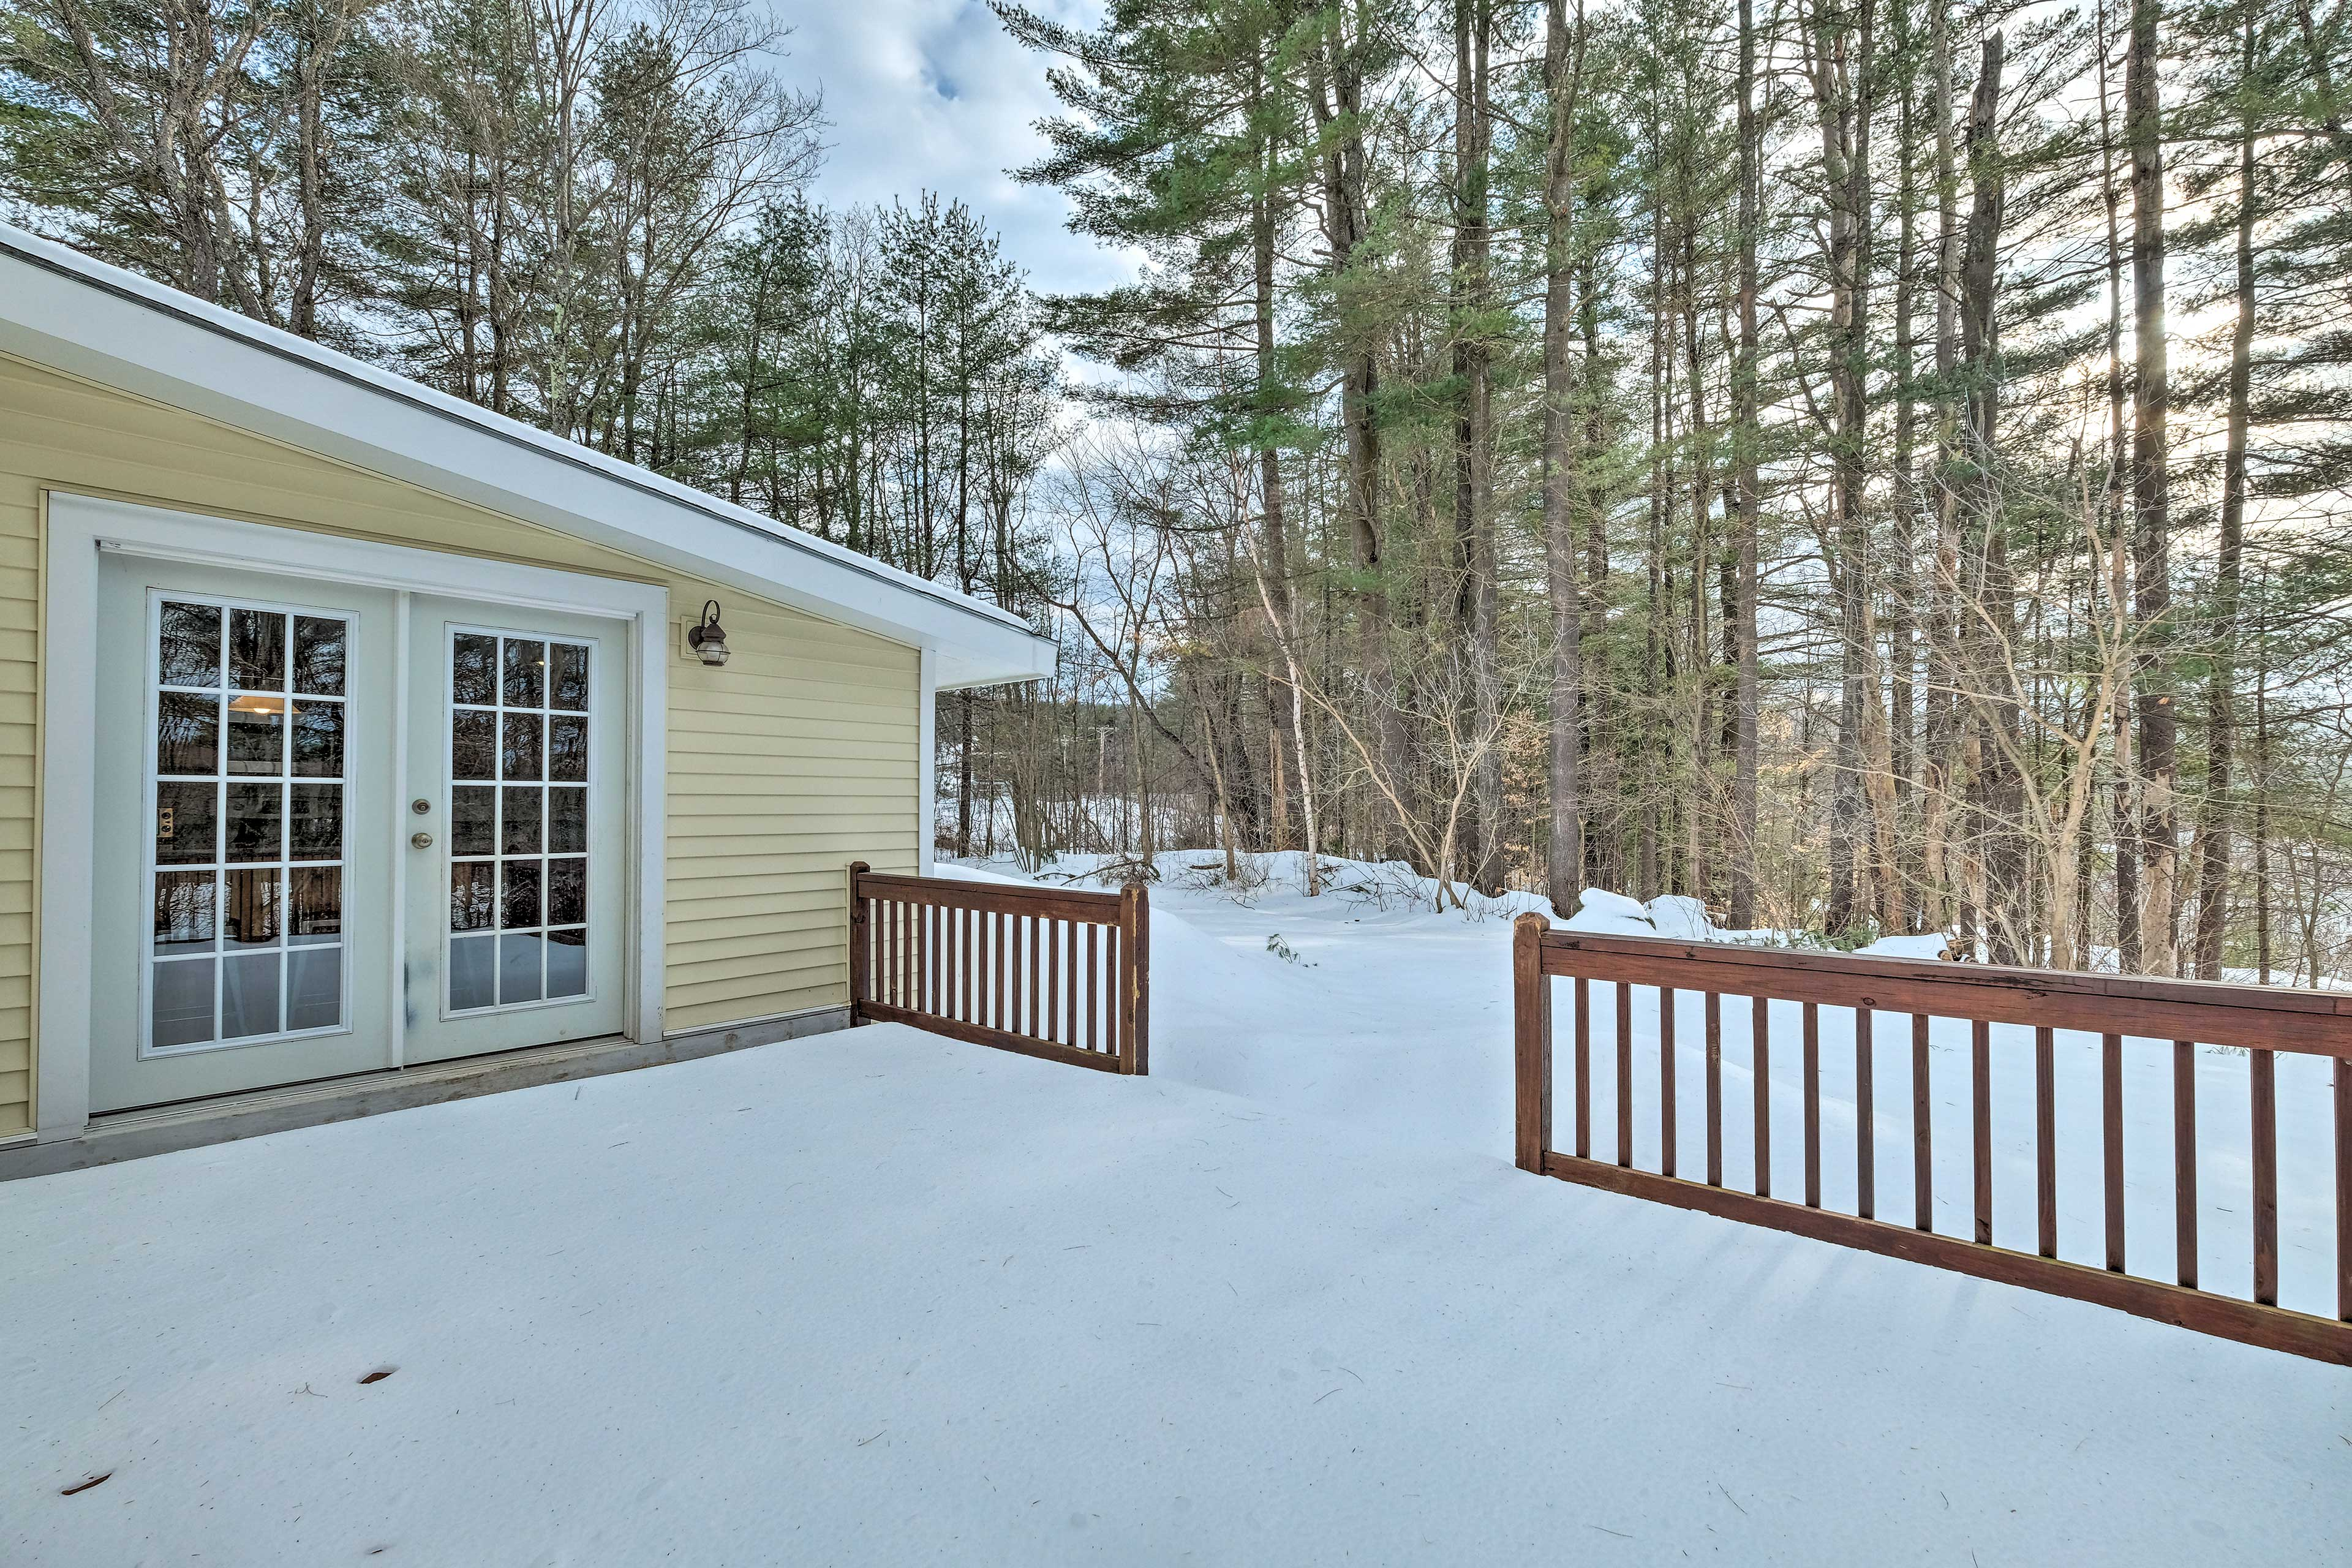 The spacious back deck offers great views of surrounding pine trees.